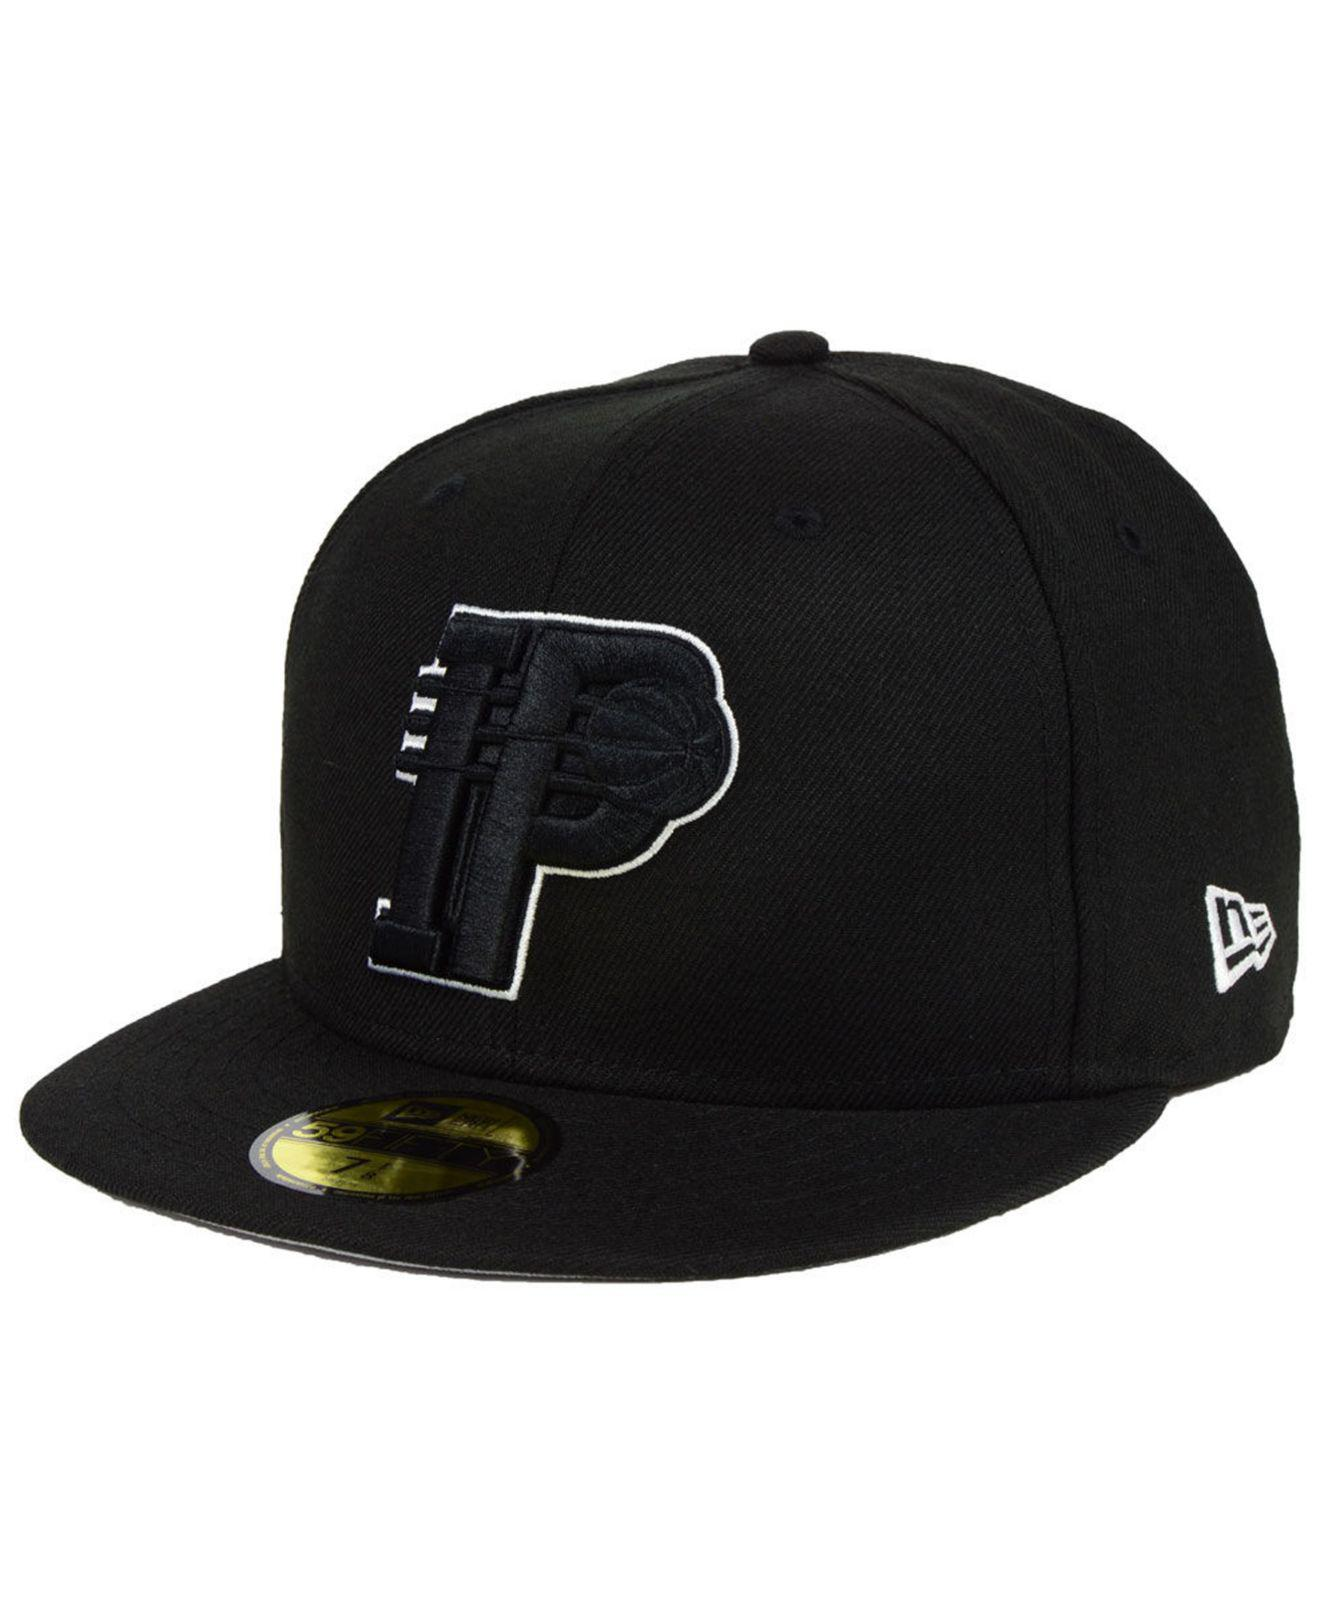 new style 84068 e2bbb KTZ. Men s Black Indiana Pacers Combo Logo 59fifty Fitted Cap